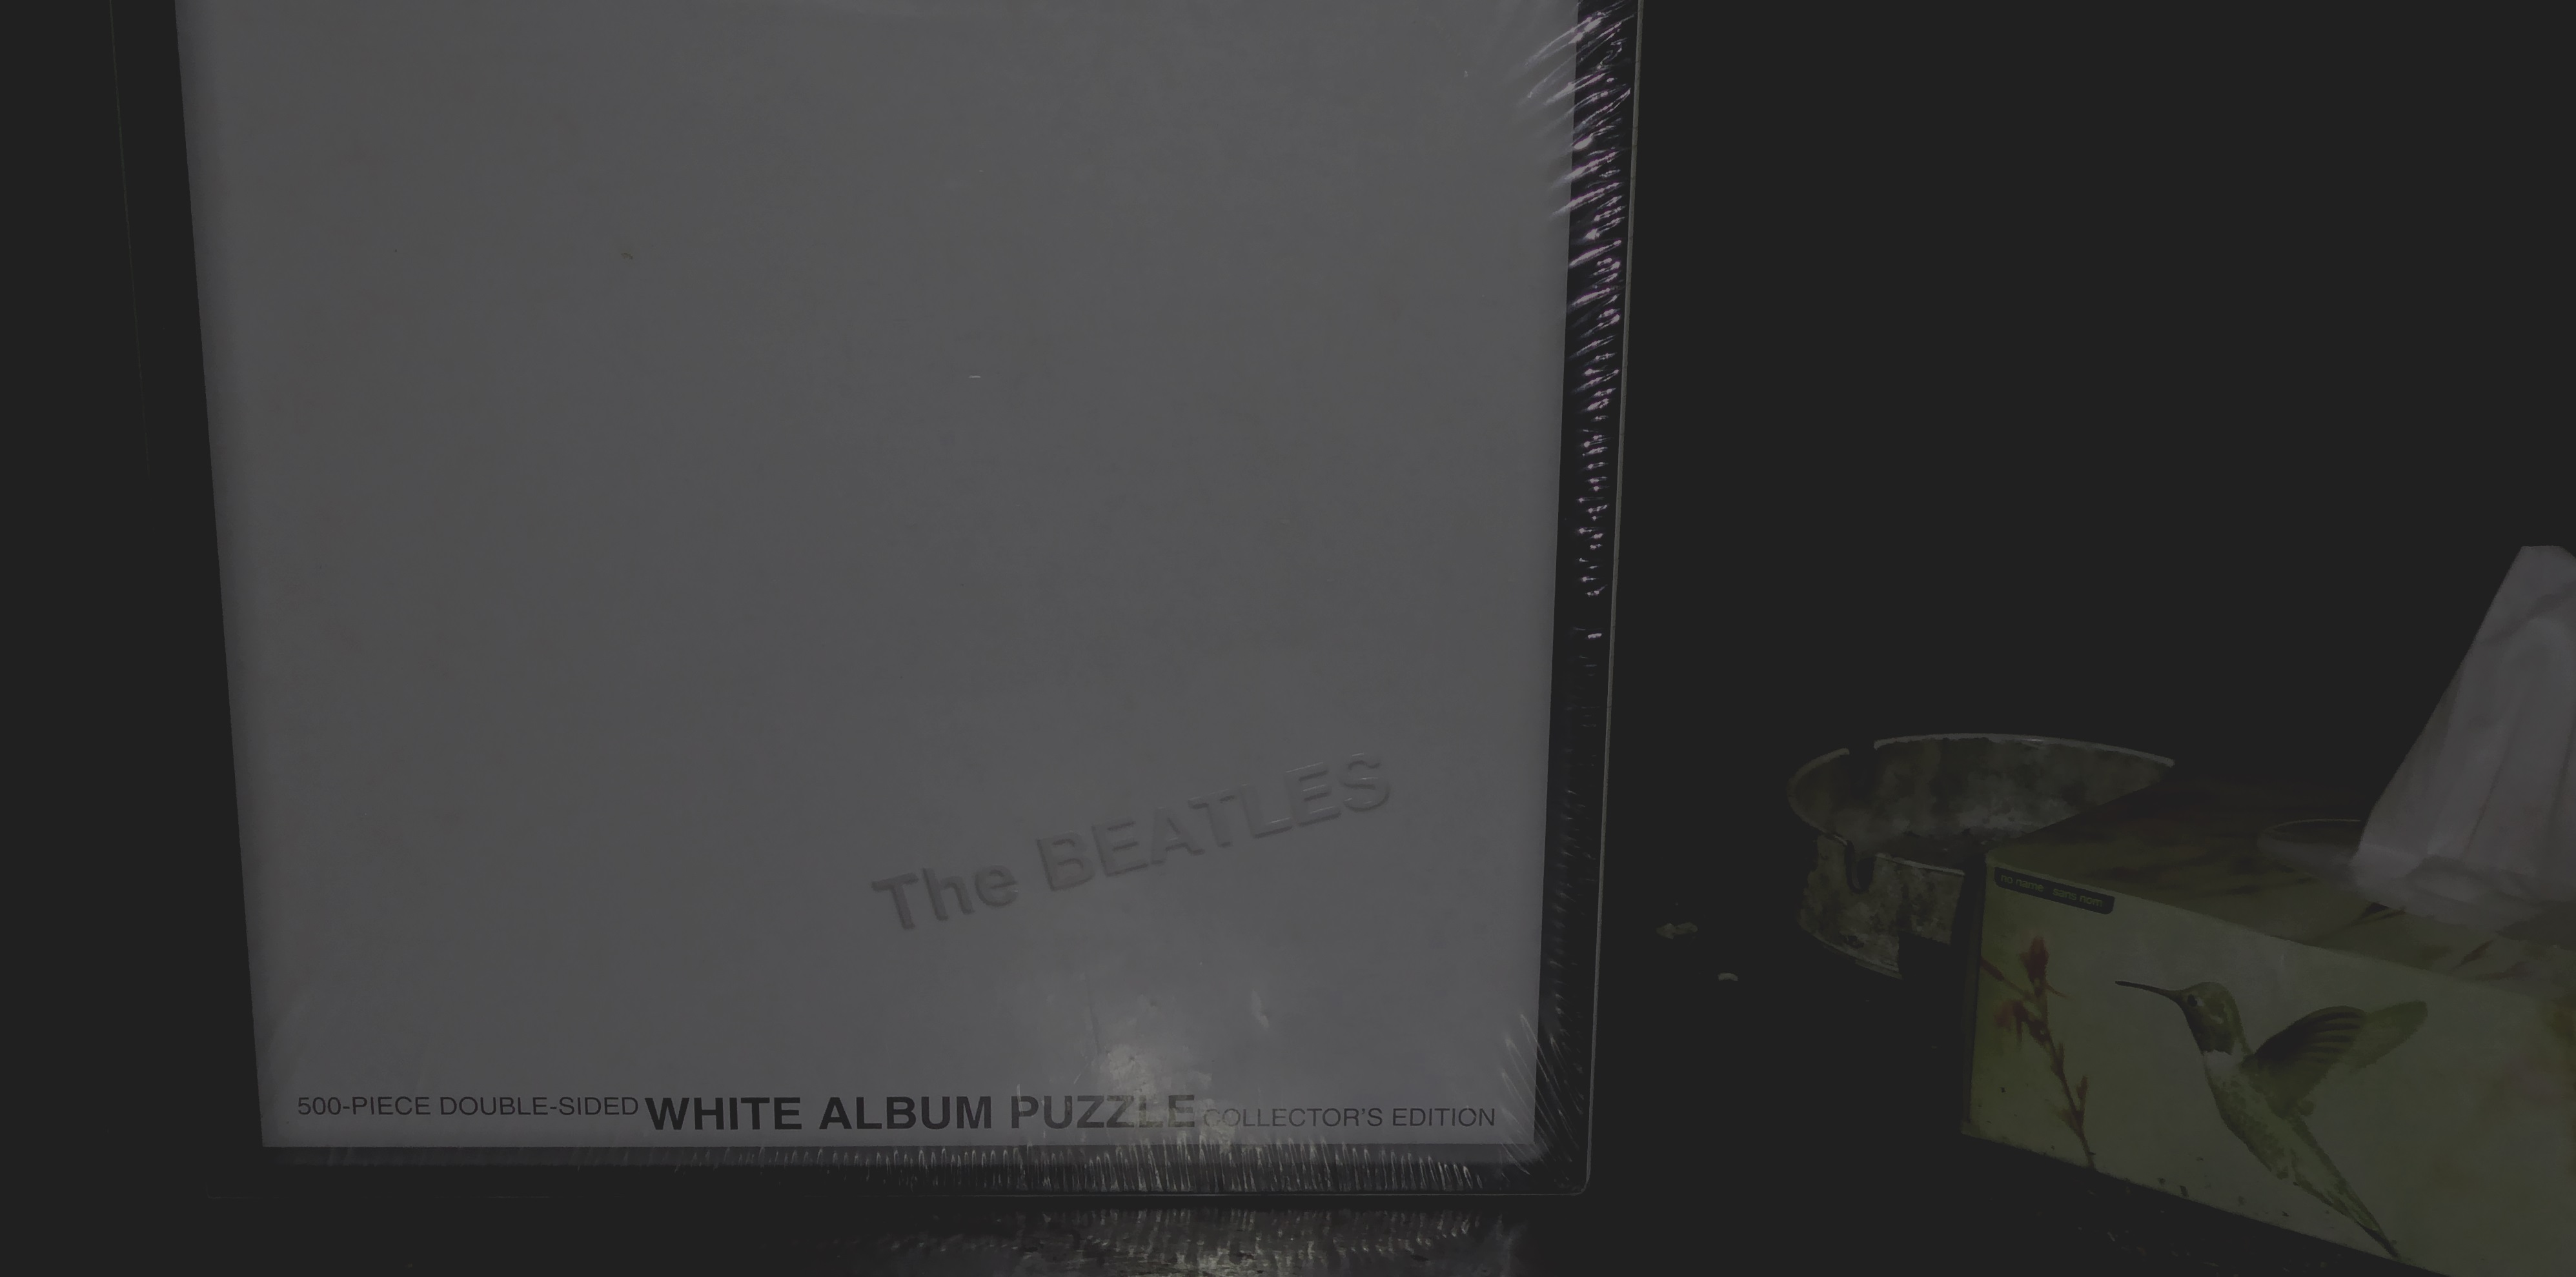 The White Album puzzle